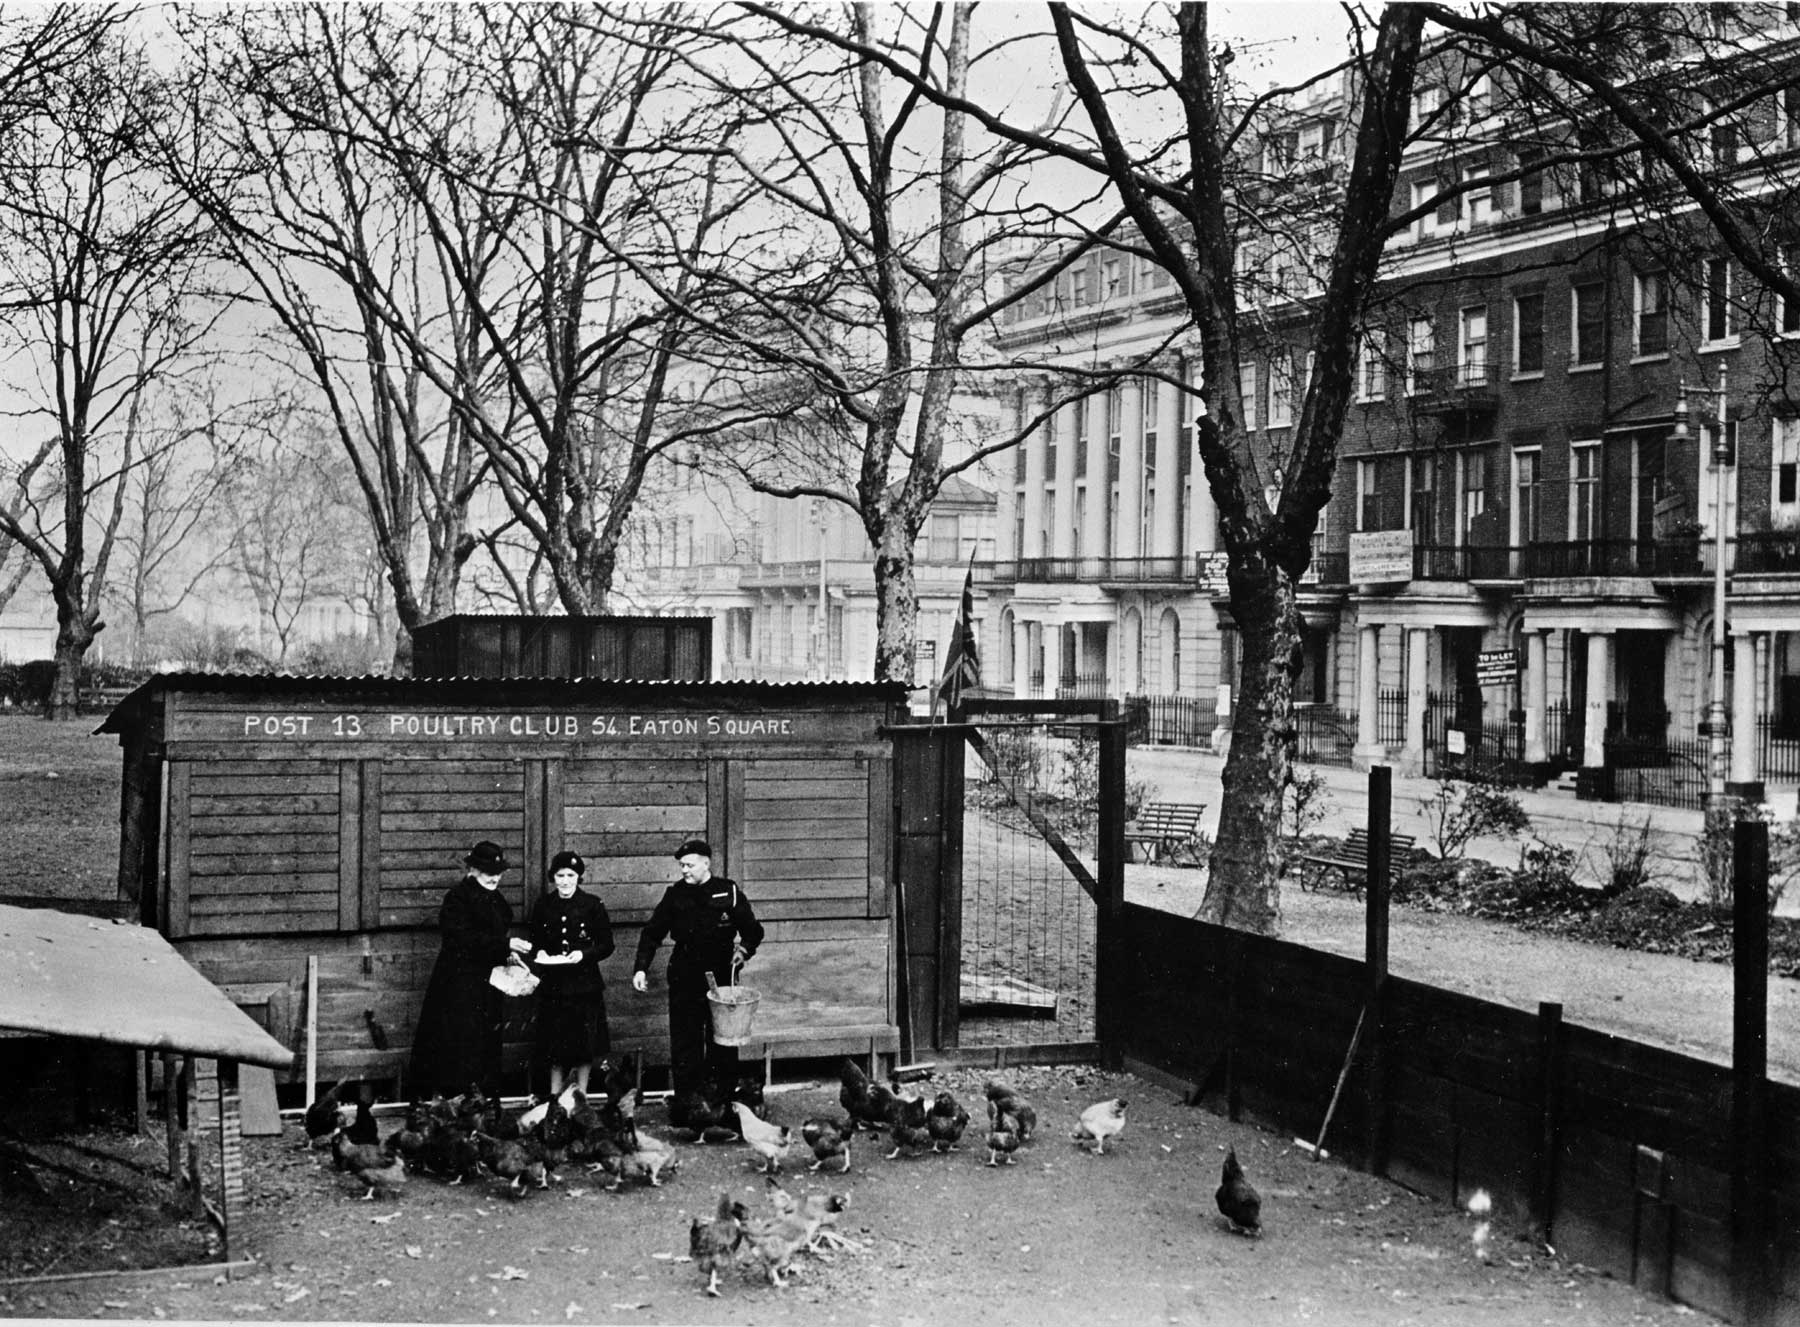 Poultry club in Eaton Square, London